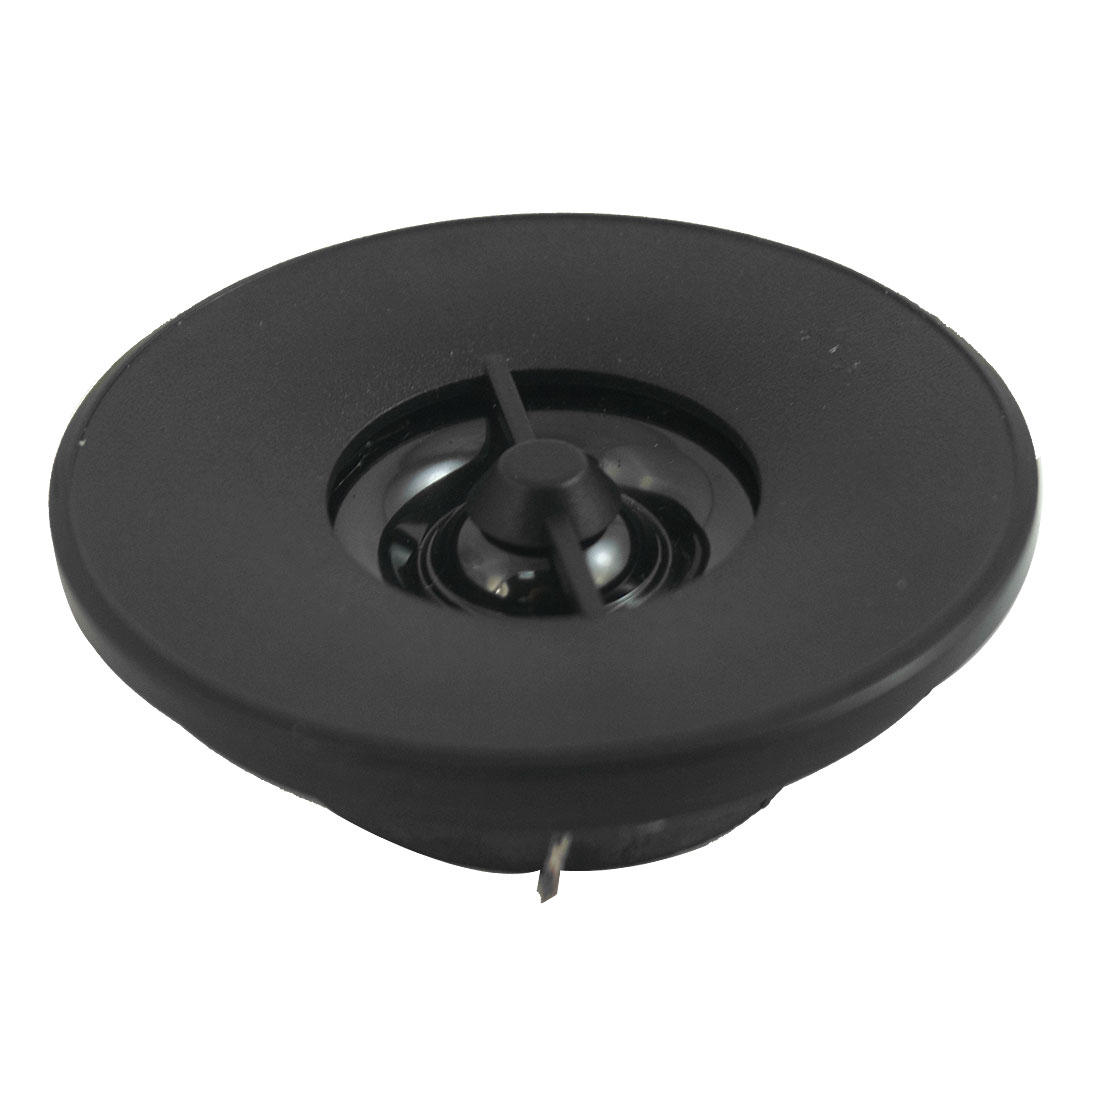 55mm Dia Round Internal Magnet Type Speaker Amplifier Loudspeaker 4W 5 Ohm